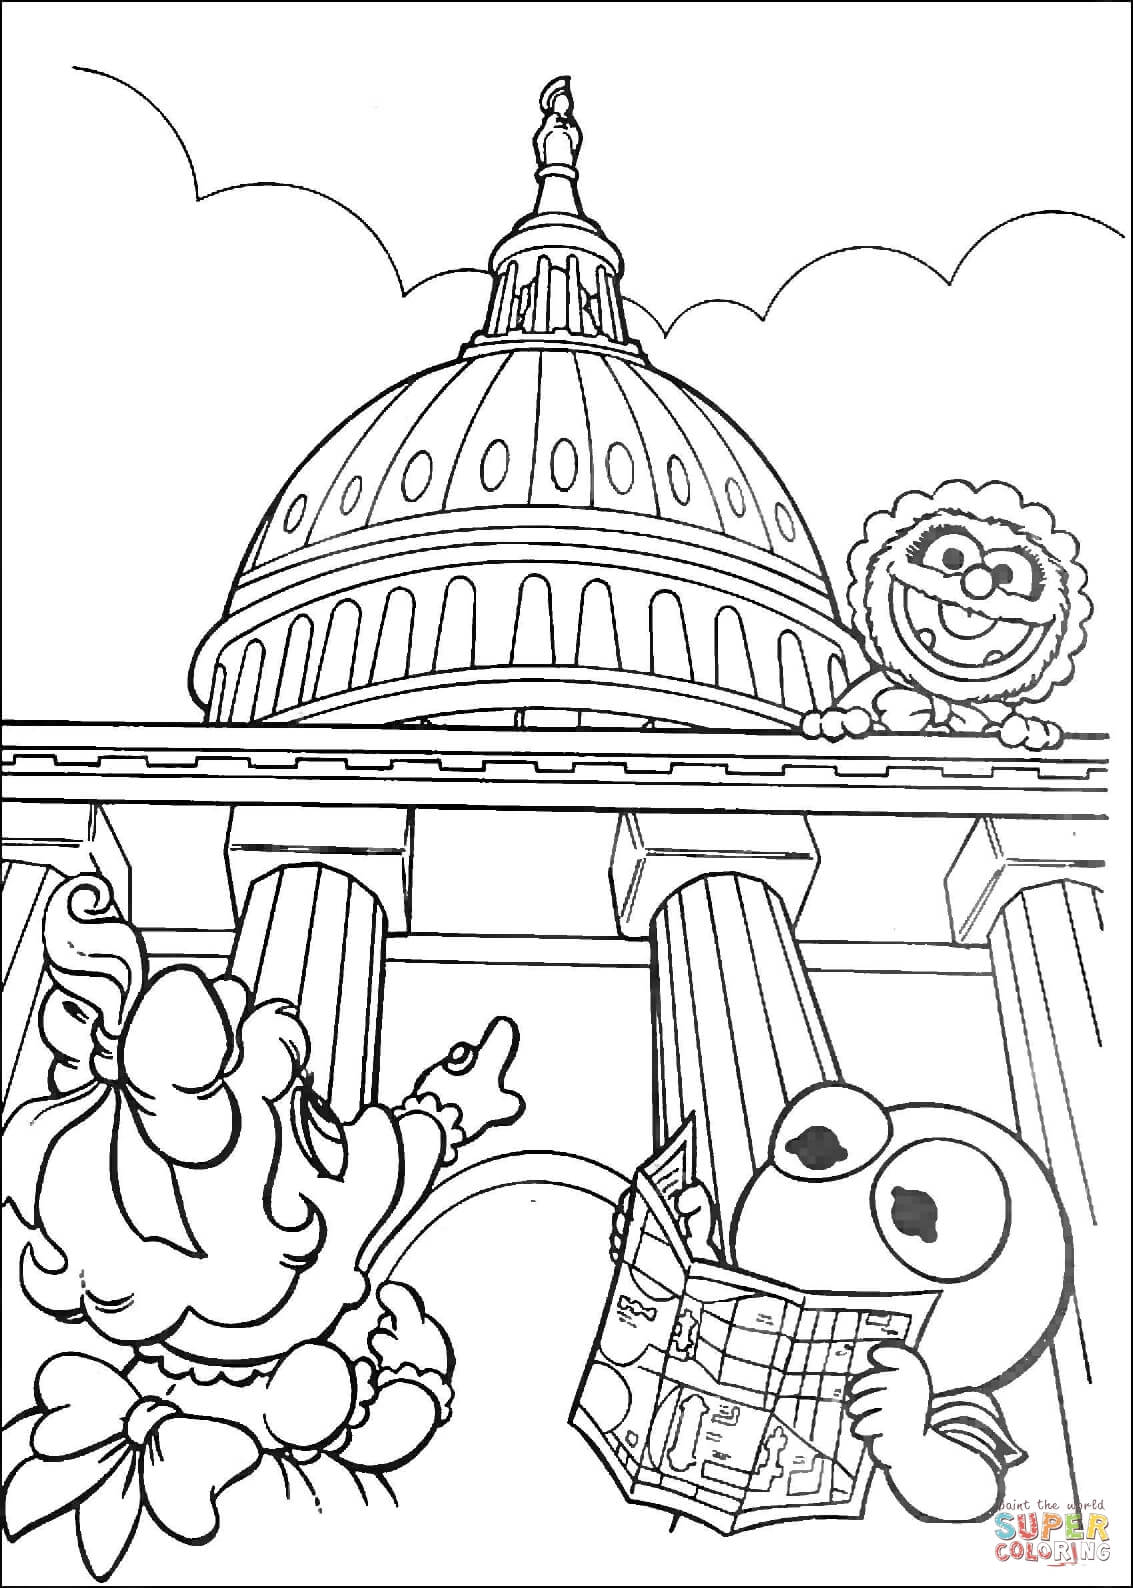 Muppet Babies In Washington D C Coloring Page Free Printable Coloring Home